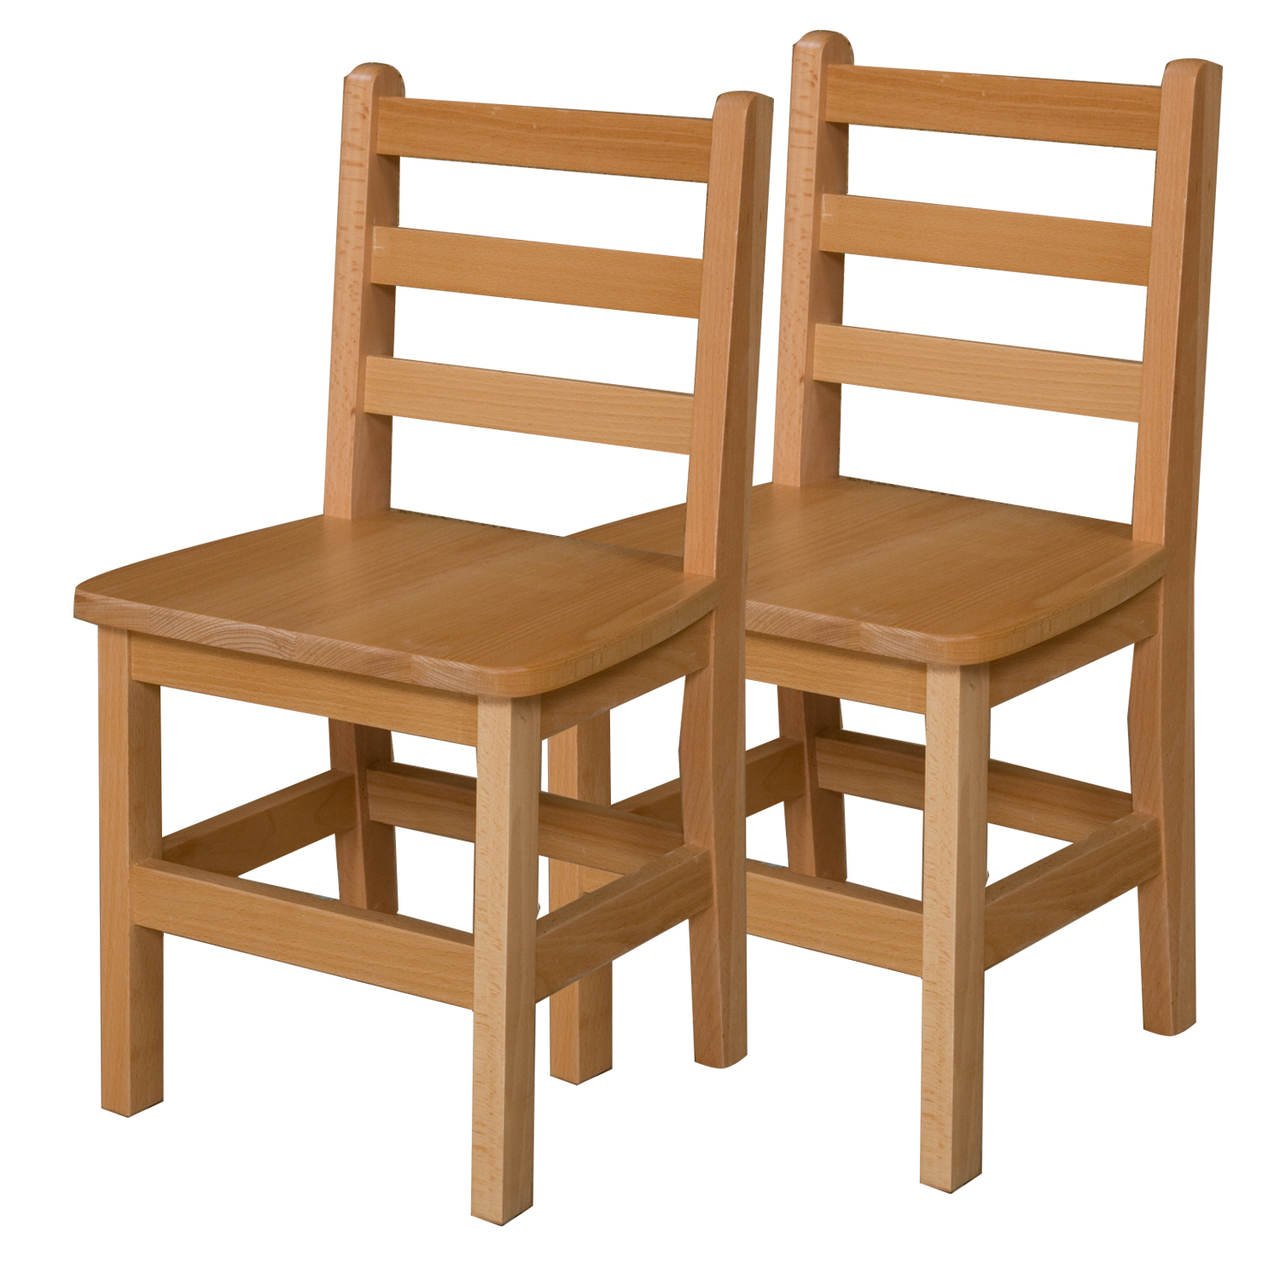 Chair Wooden Wooden Classroom Preschool Daycare Chairs